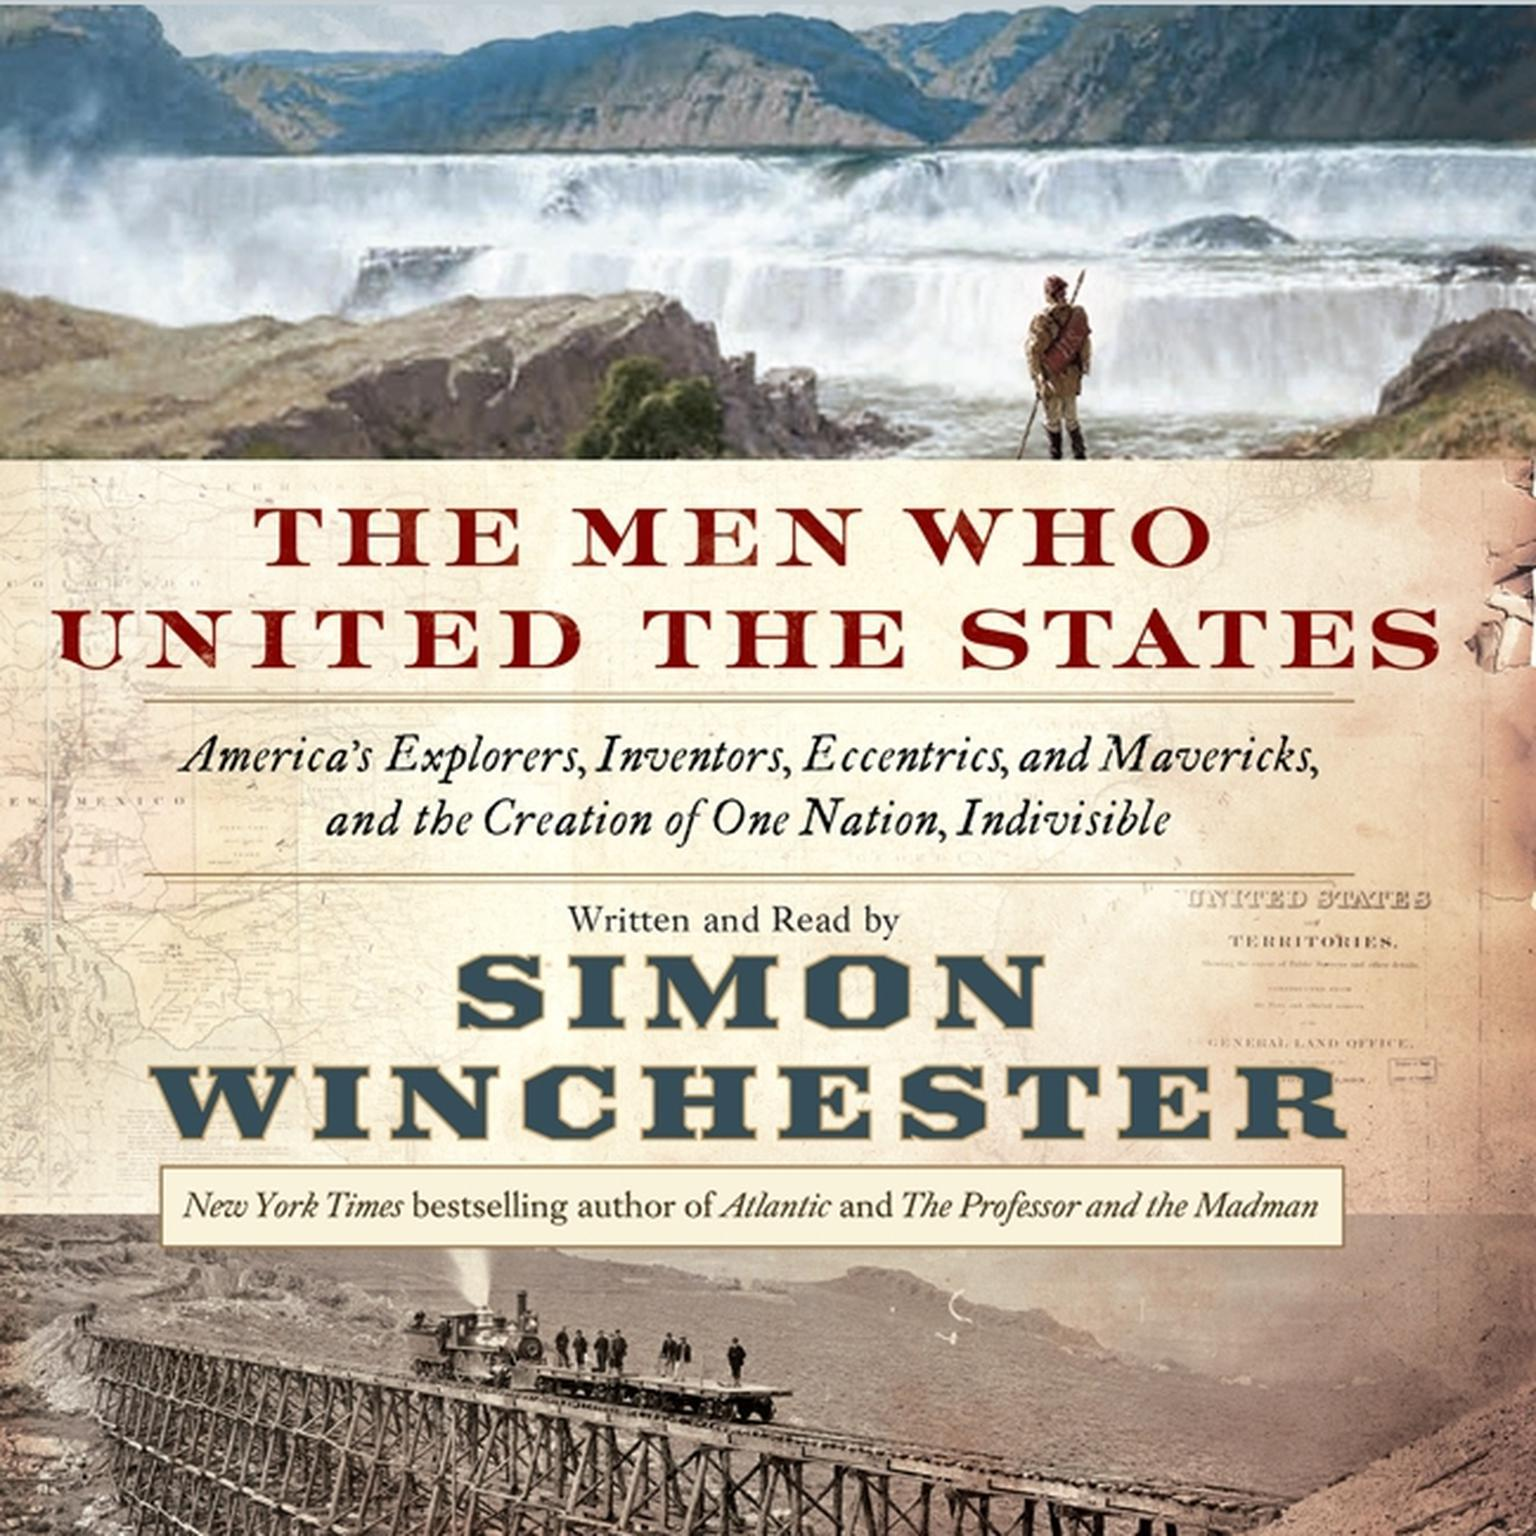 Printable The Men Who United the States: America's Explorers, Inventors, Eccentrics, and Mavericks, and the Creation of One Nation, Indivisible Audiobook Cover Art